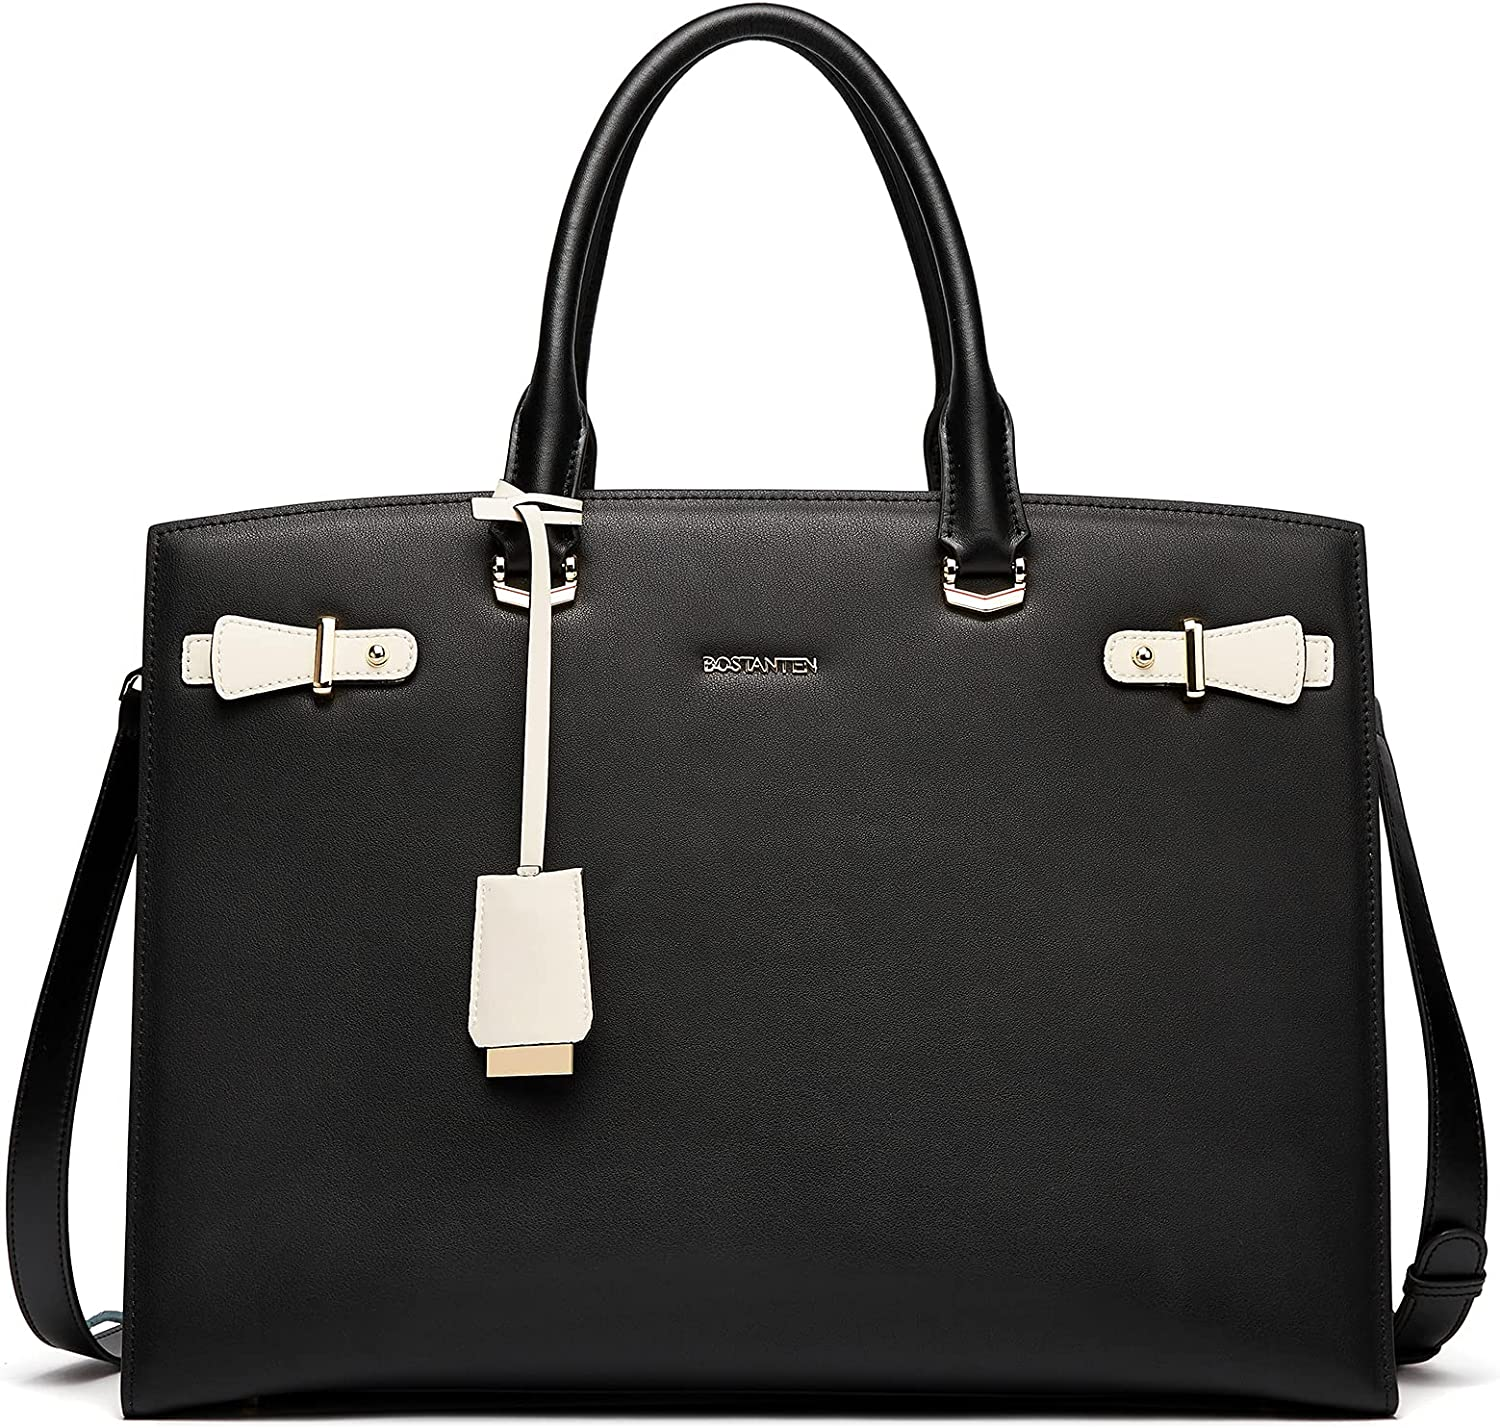 BOSTANTEN Womens Leather Briefcase 15.6 Inch Top-handle Max 64% OFF Laptop B All items free shipping